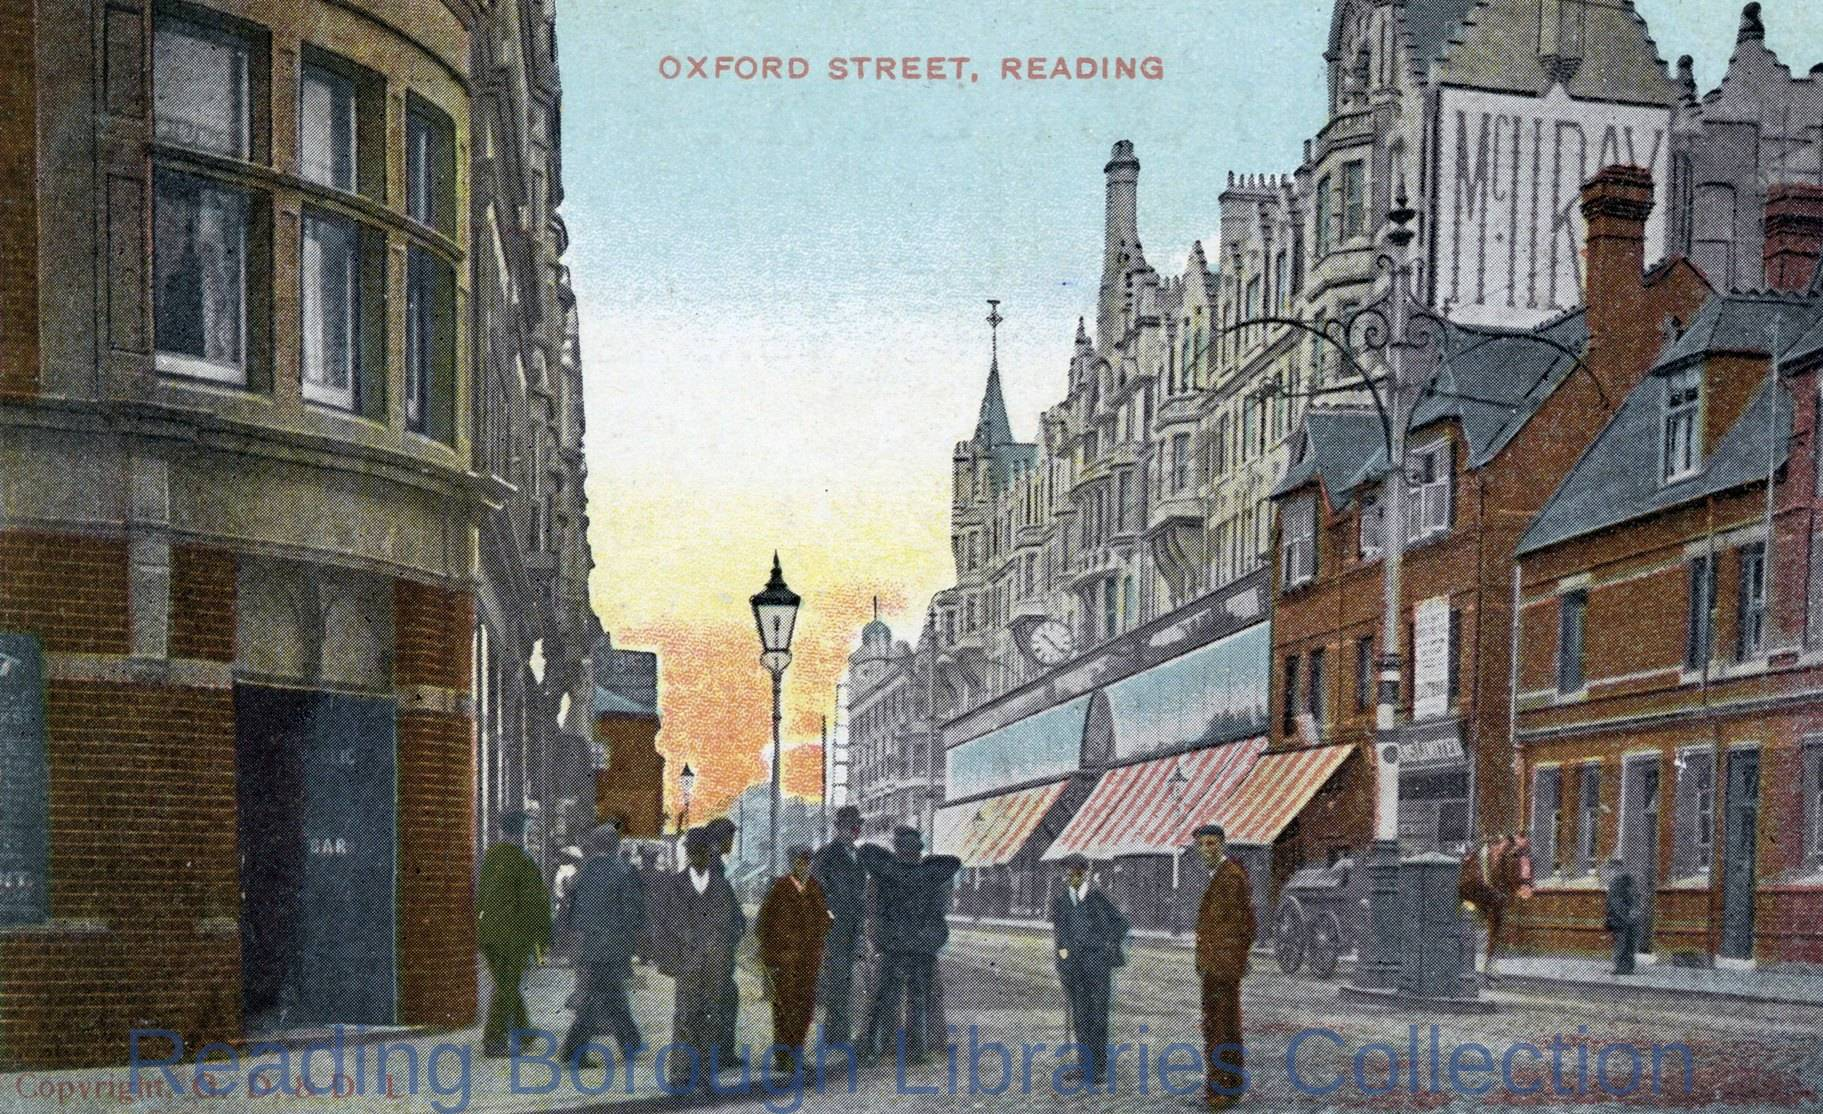 Oxford Road, Reading, looking west.